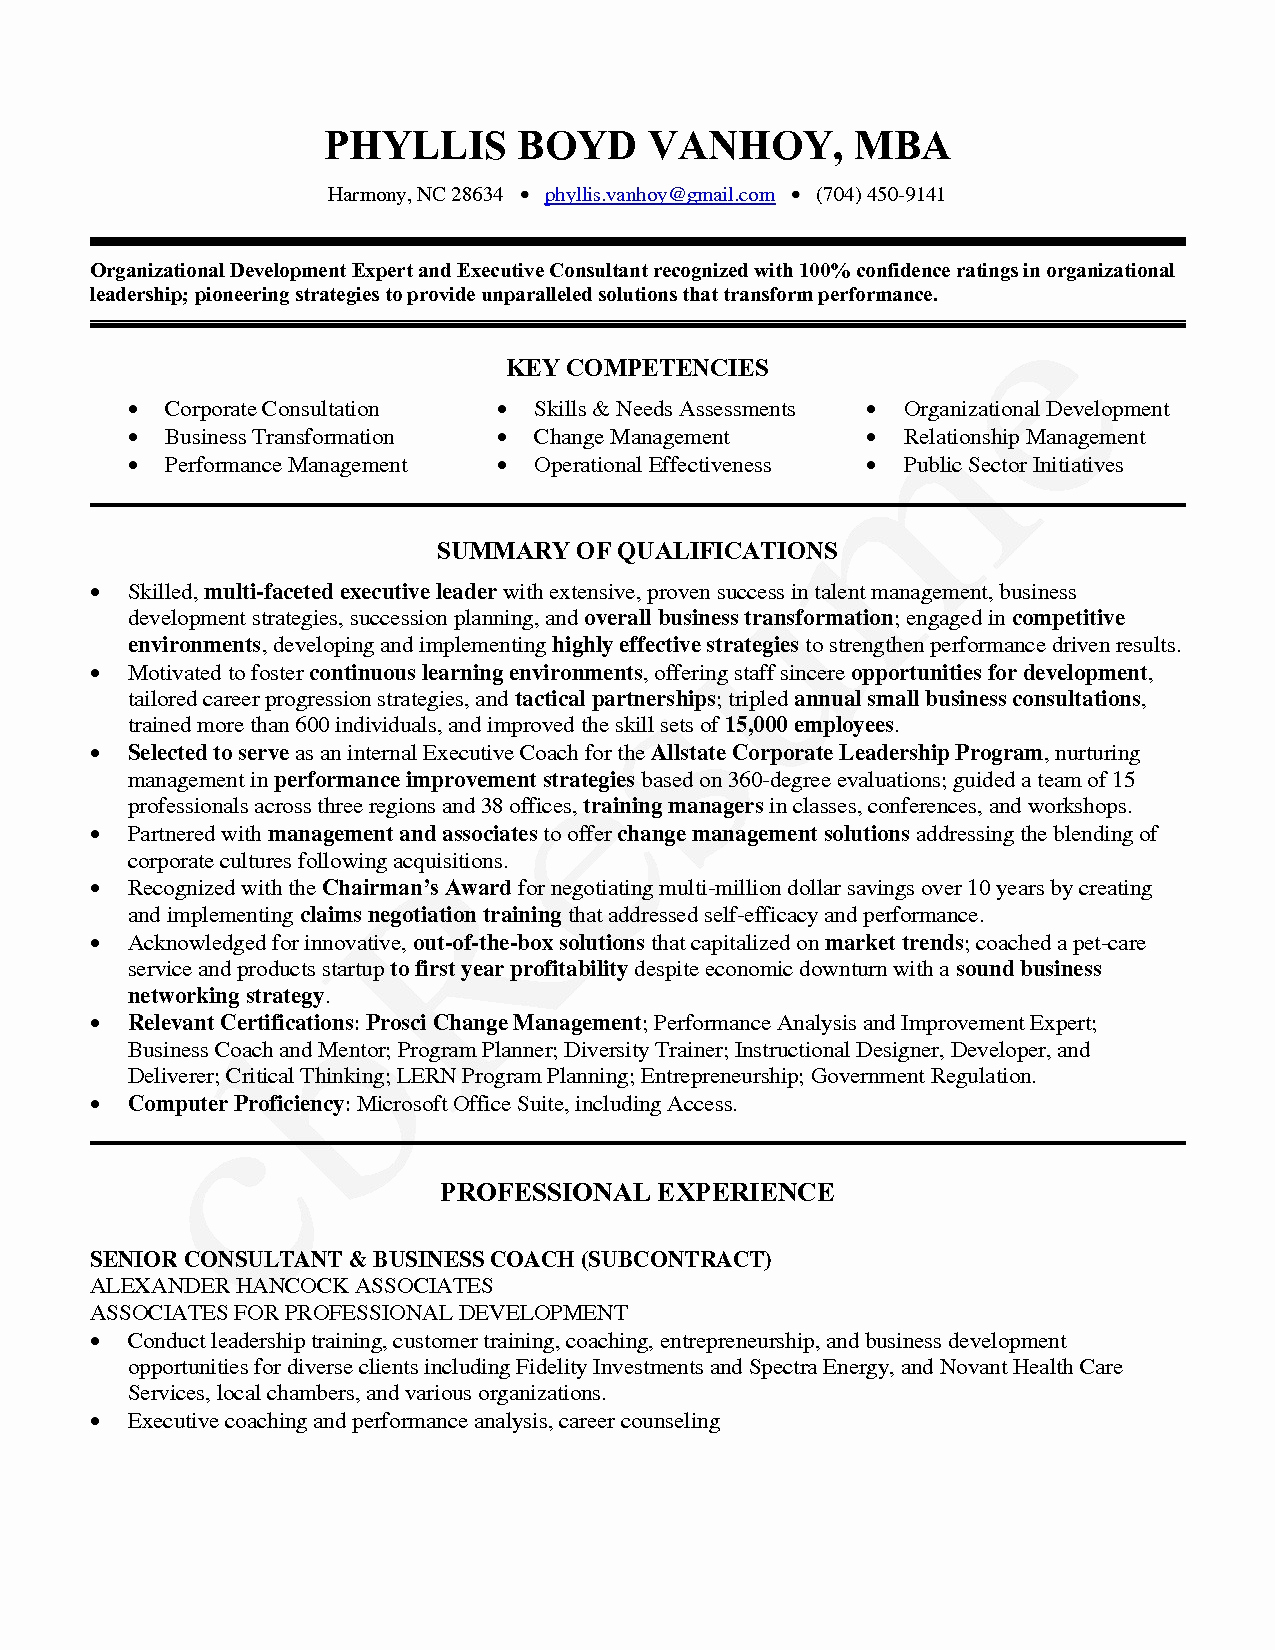 Business Development Cover Letter Template Examples | Letter Cover ...